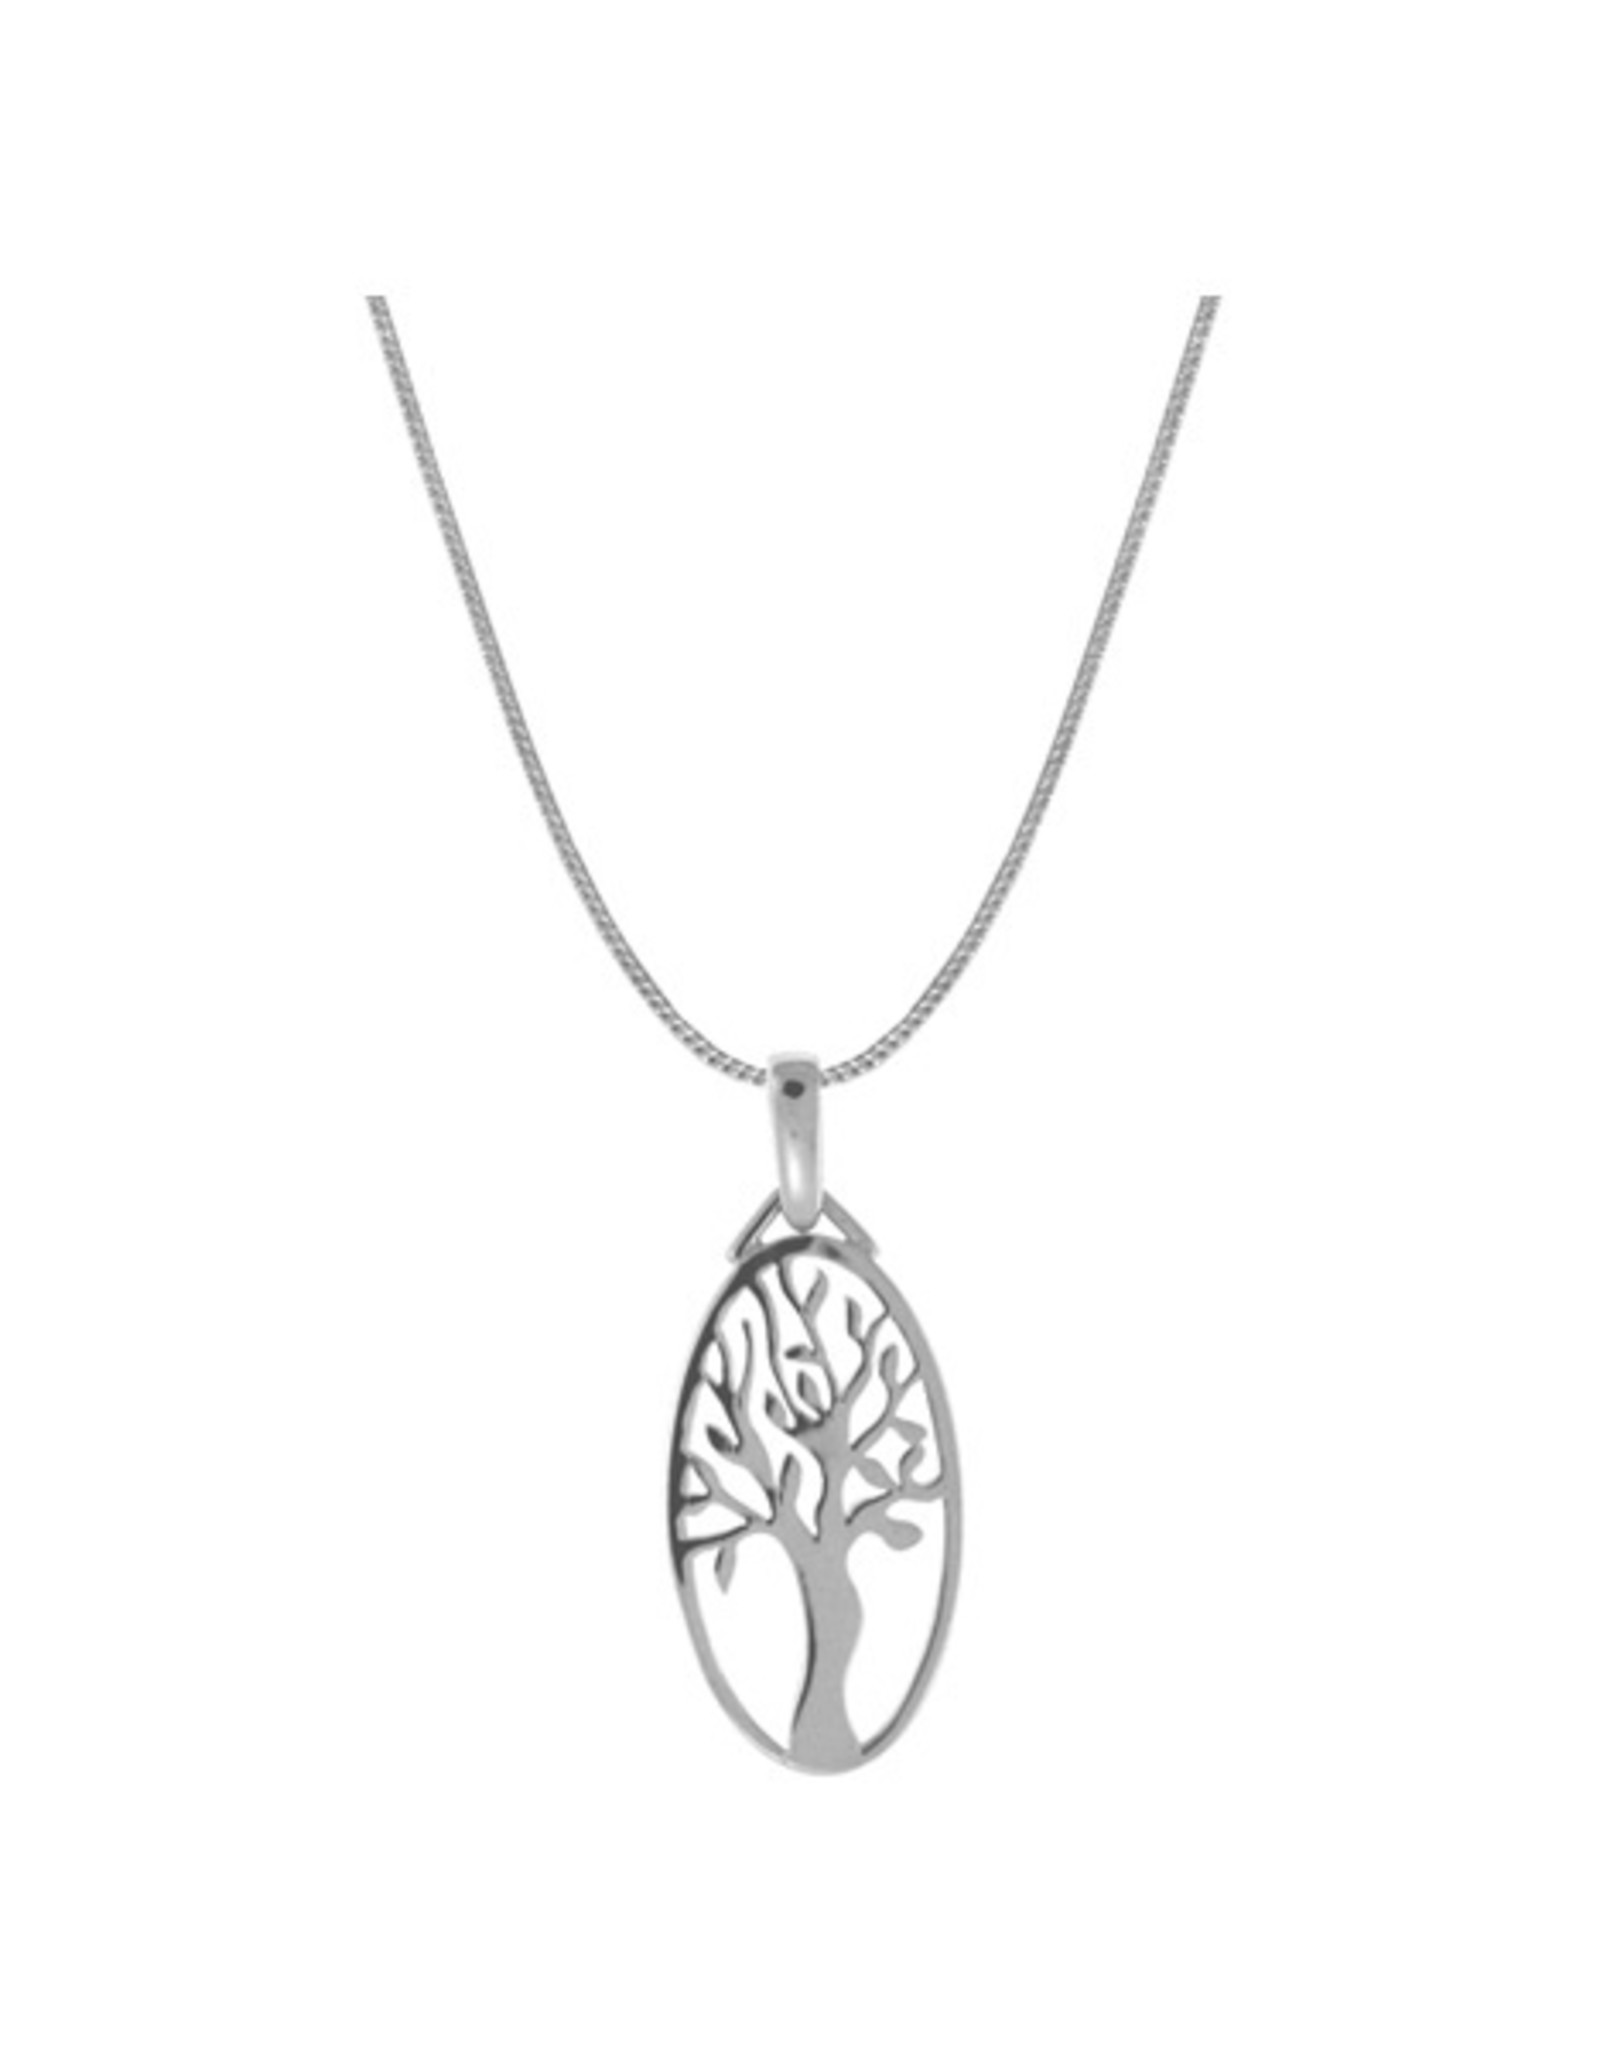 "Boma TREE OF LIFE OVAL NECKLACE 16"" SILVER"